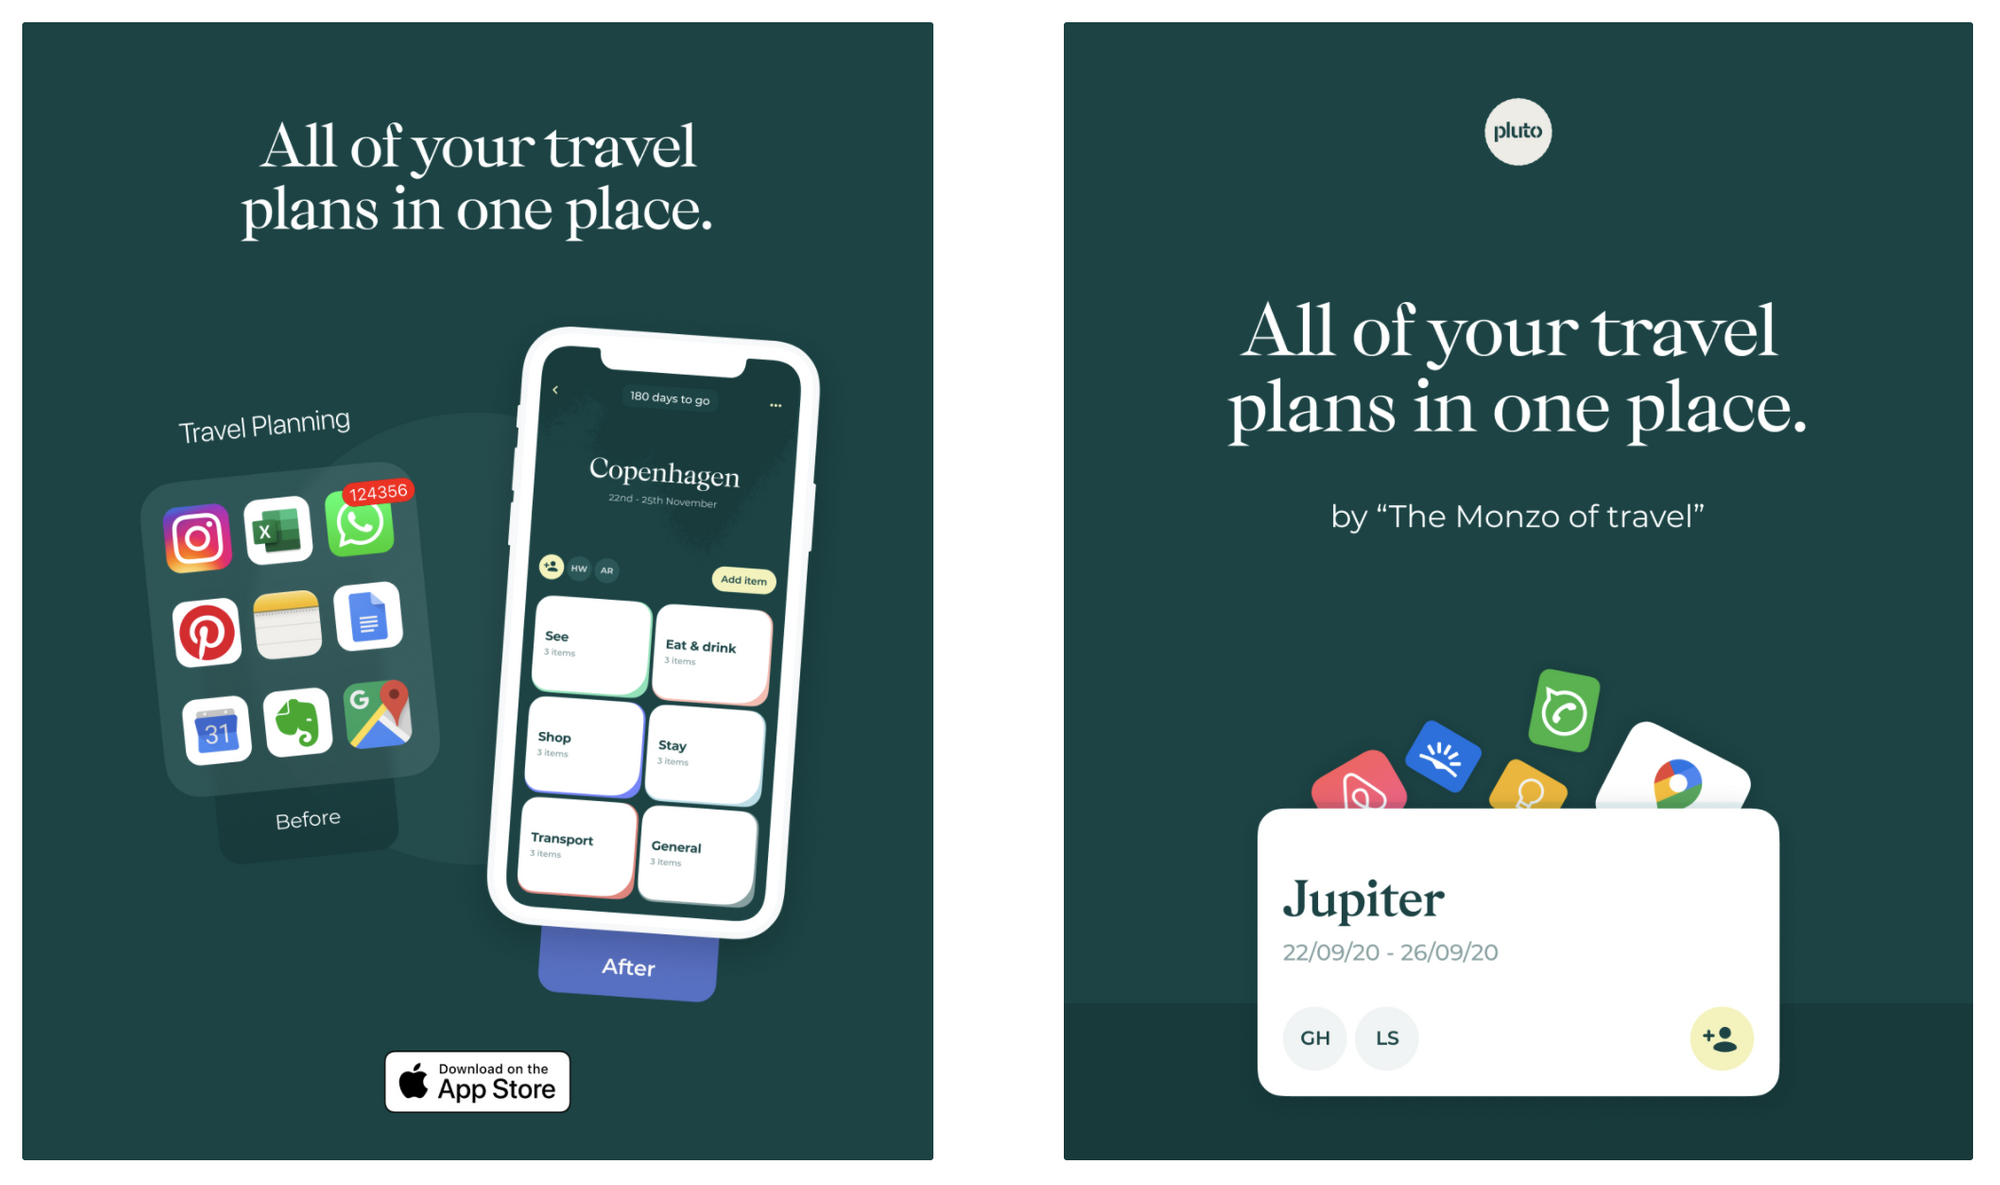 Pluto paid ad examples